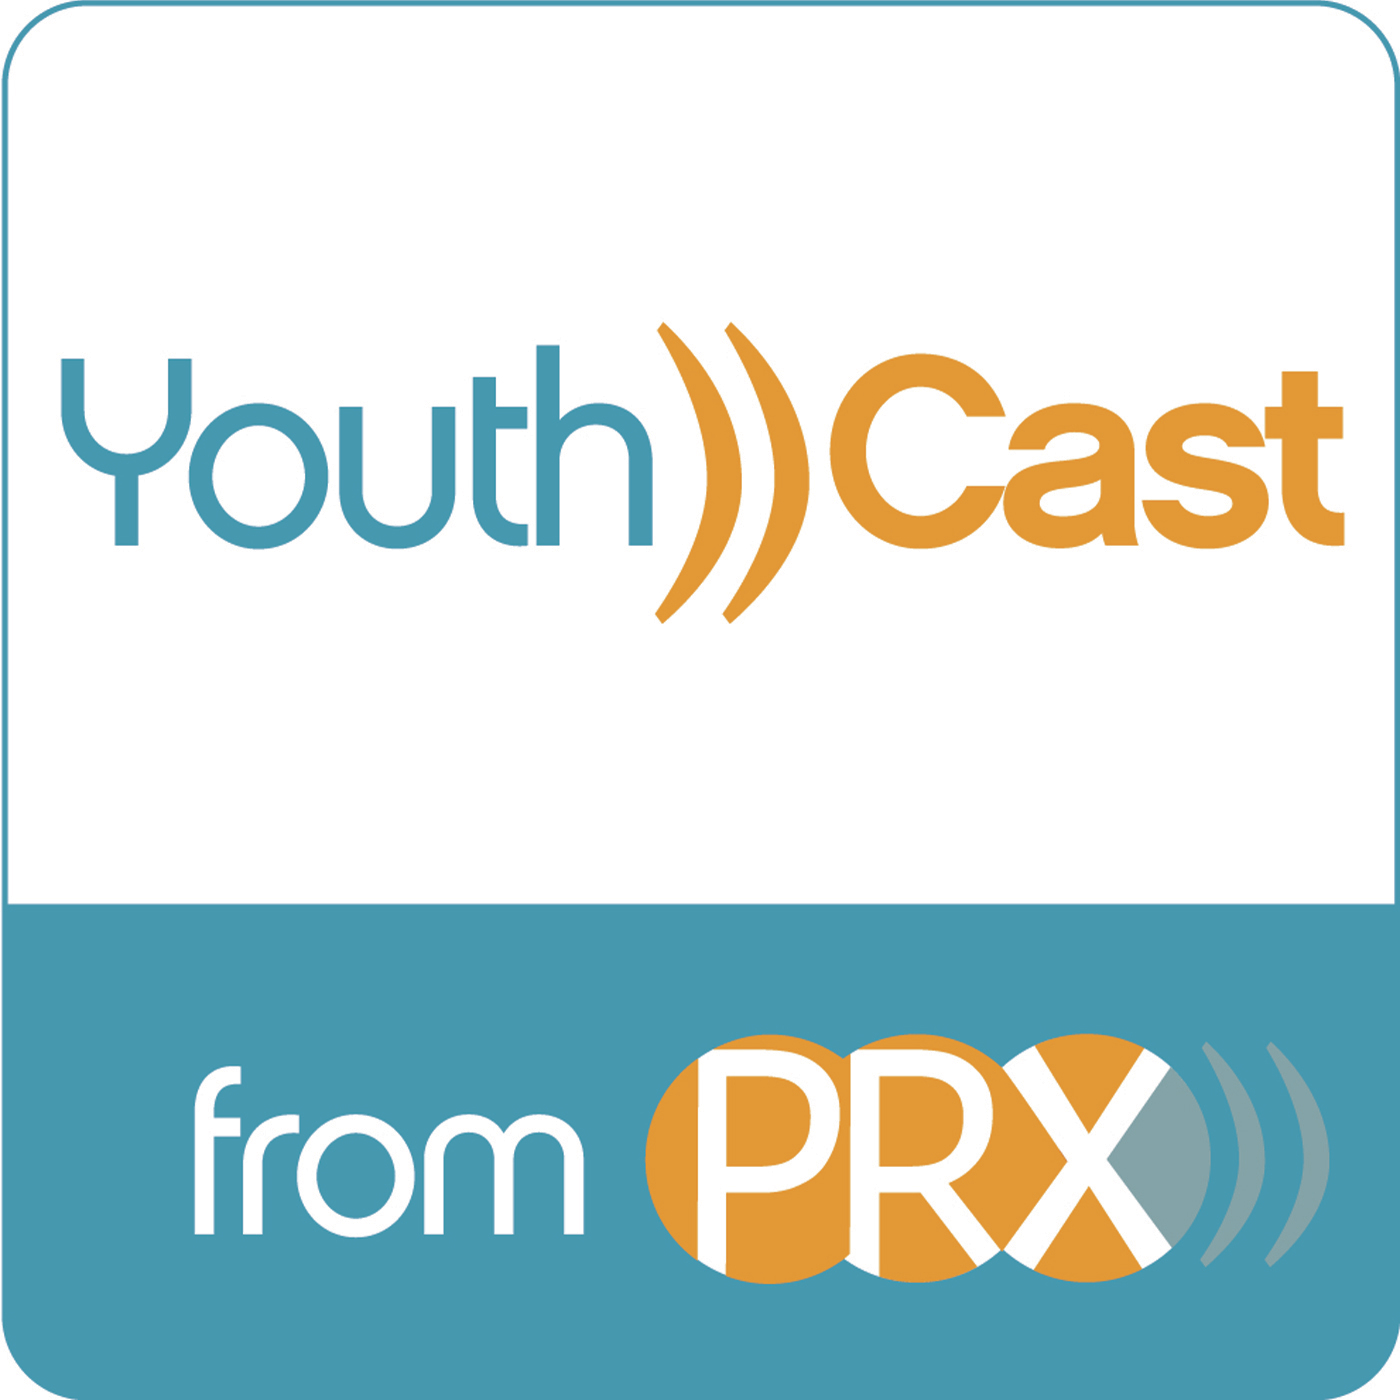 YouthCast from PRX